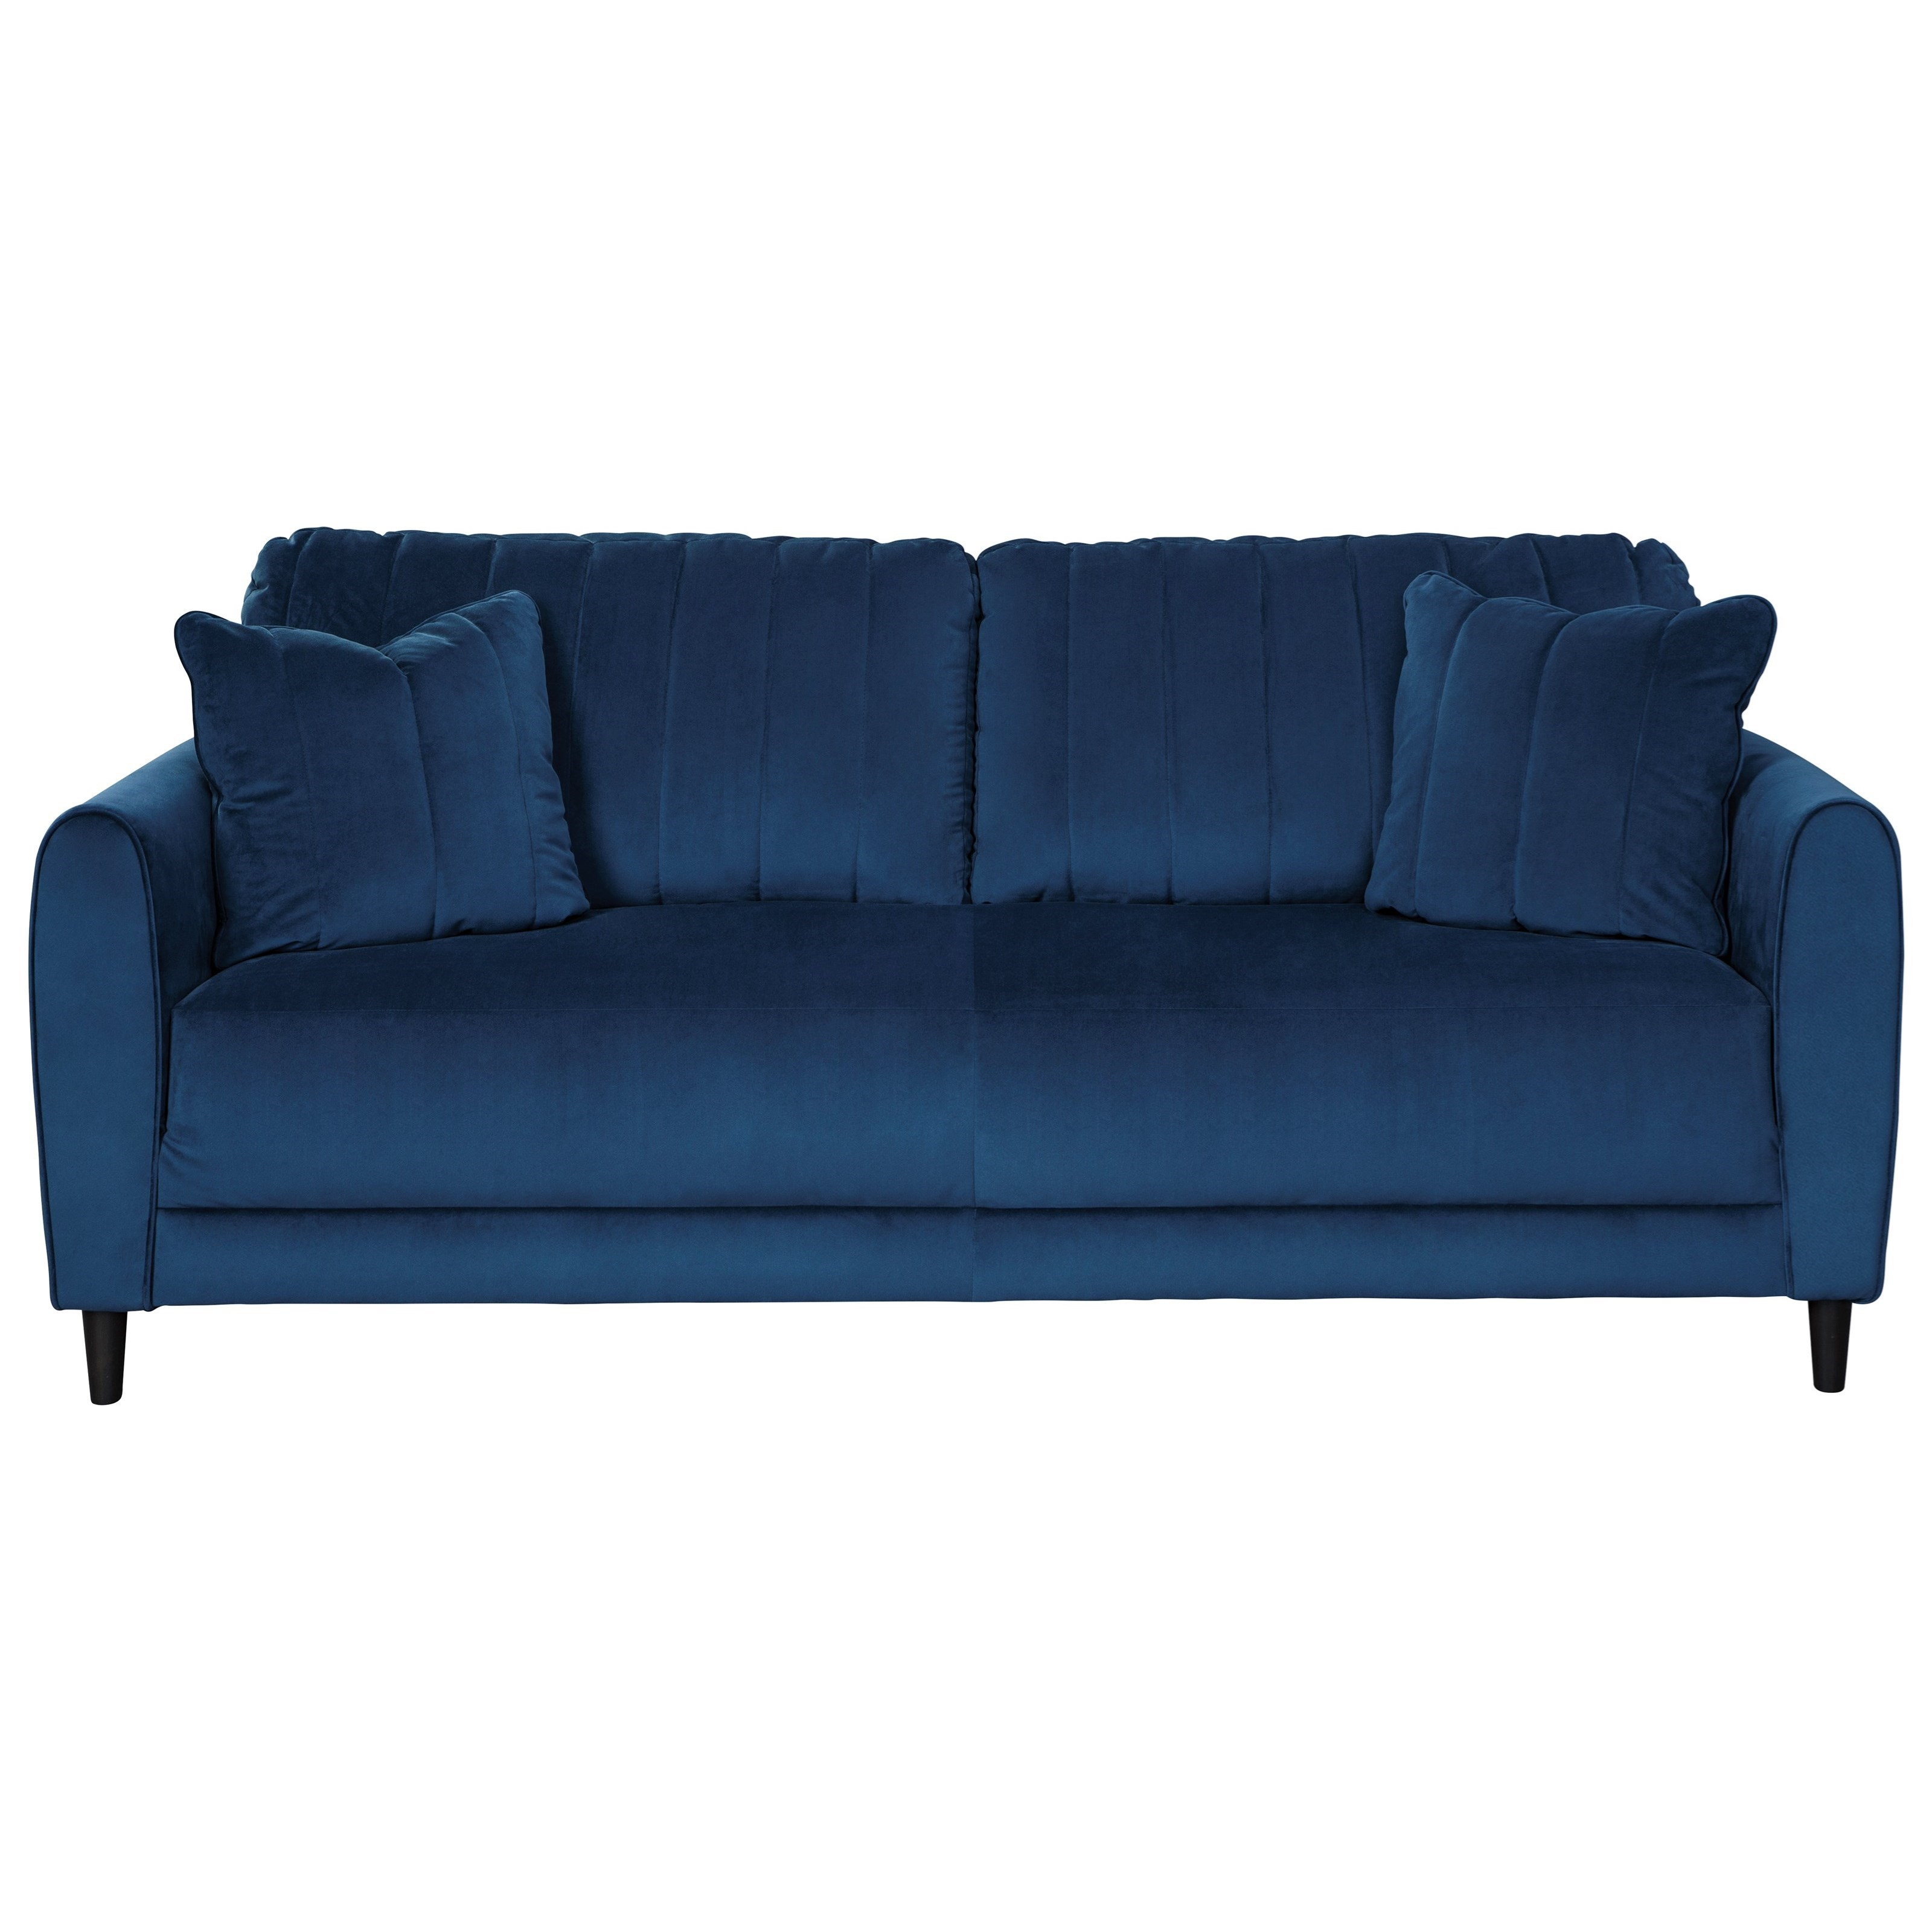 Signature Design By Ashley Enderlin Contemporary Sofa In Blue Velvet Fabric Wayside Furniture Sofas